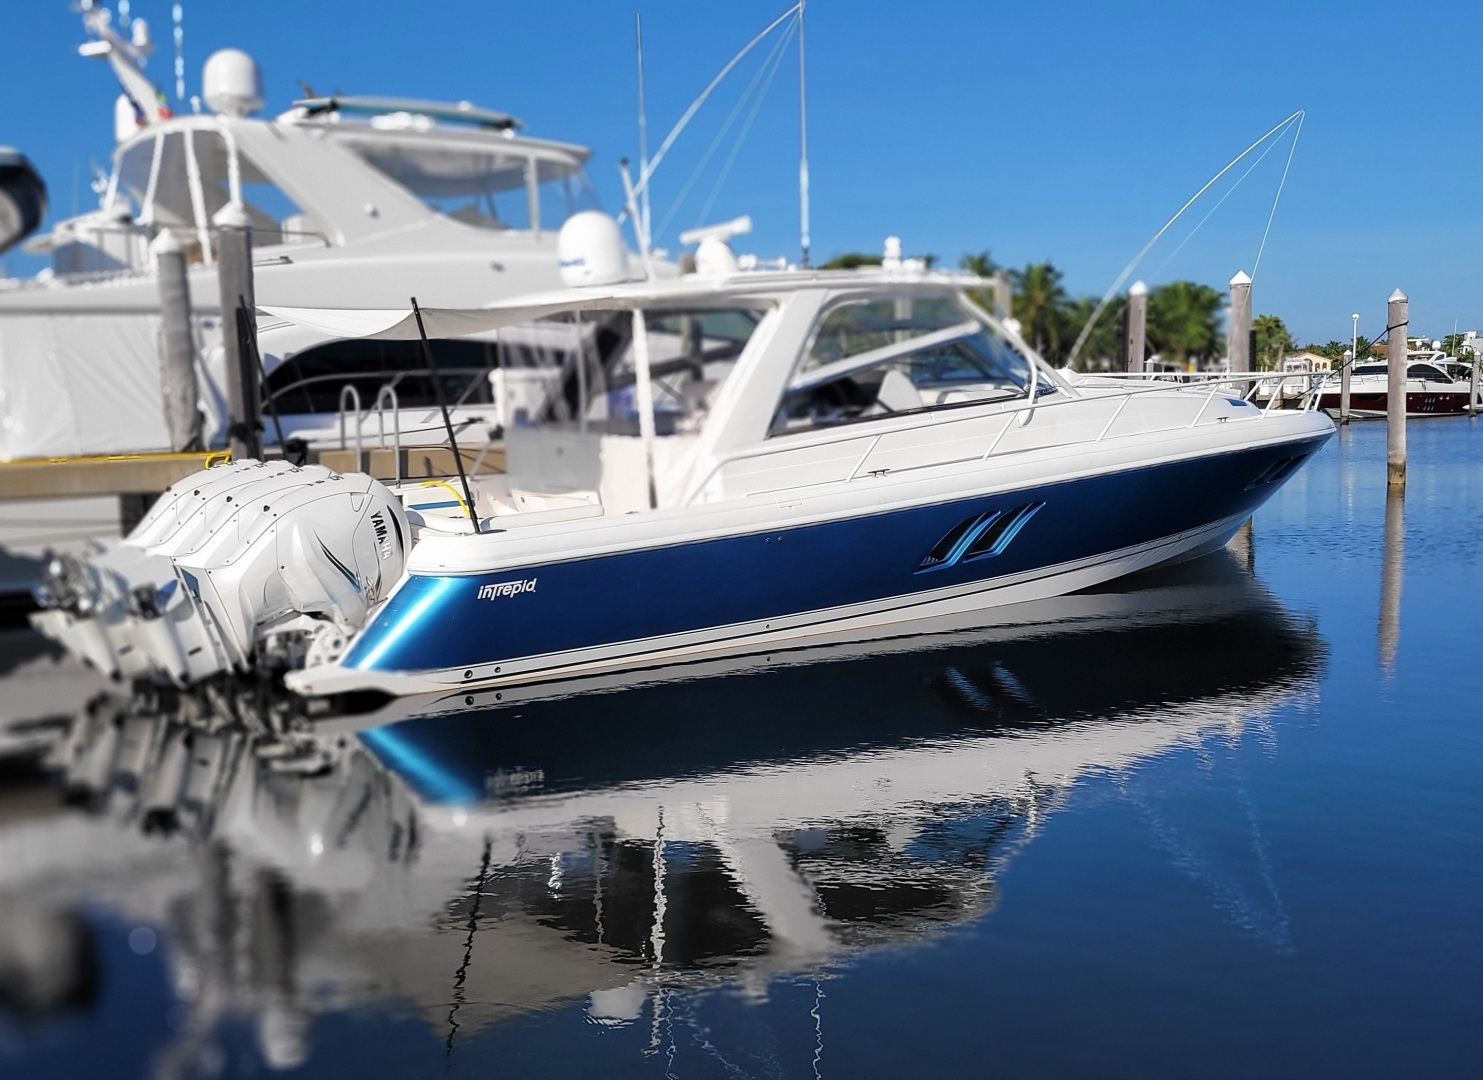 47' Intrepid 2019 475 Sport Yacht